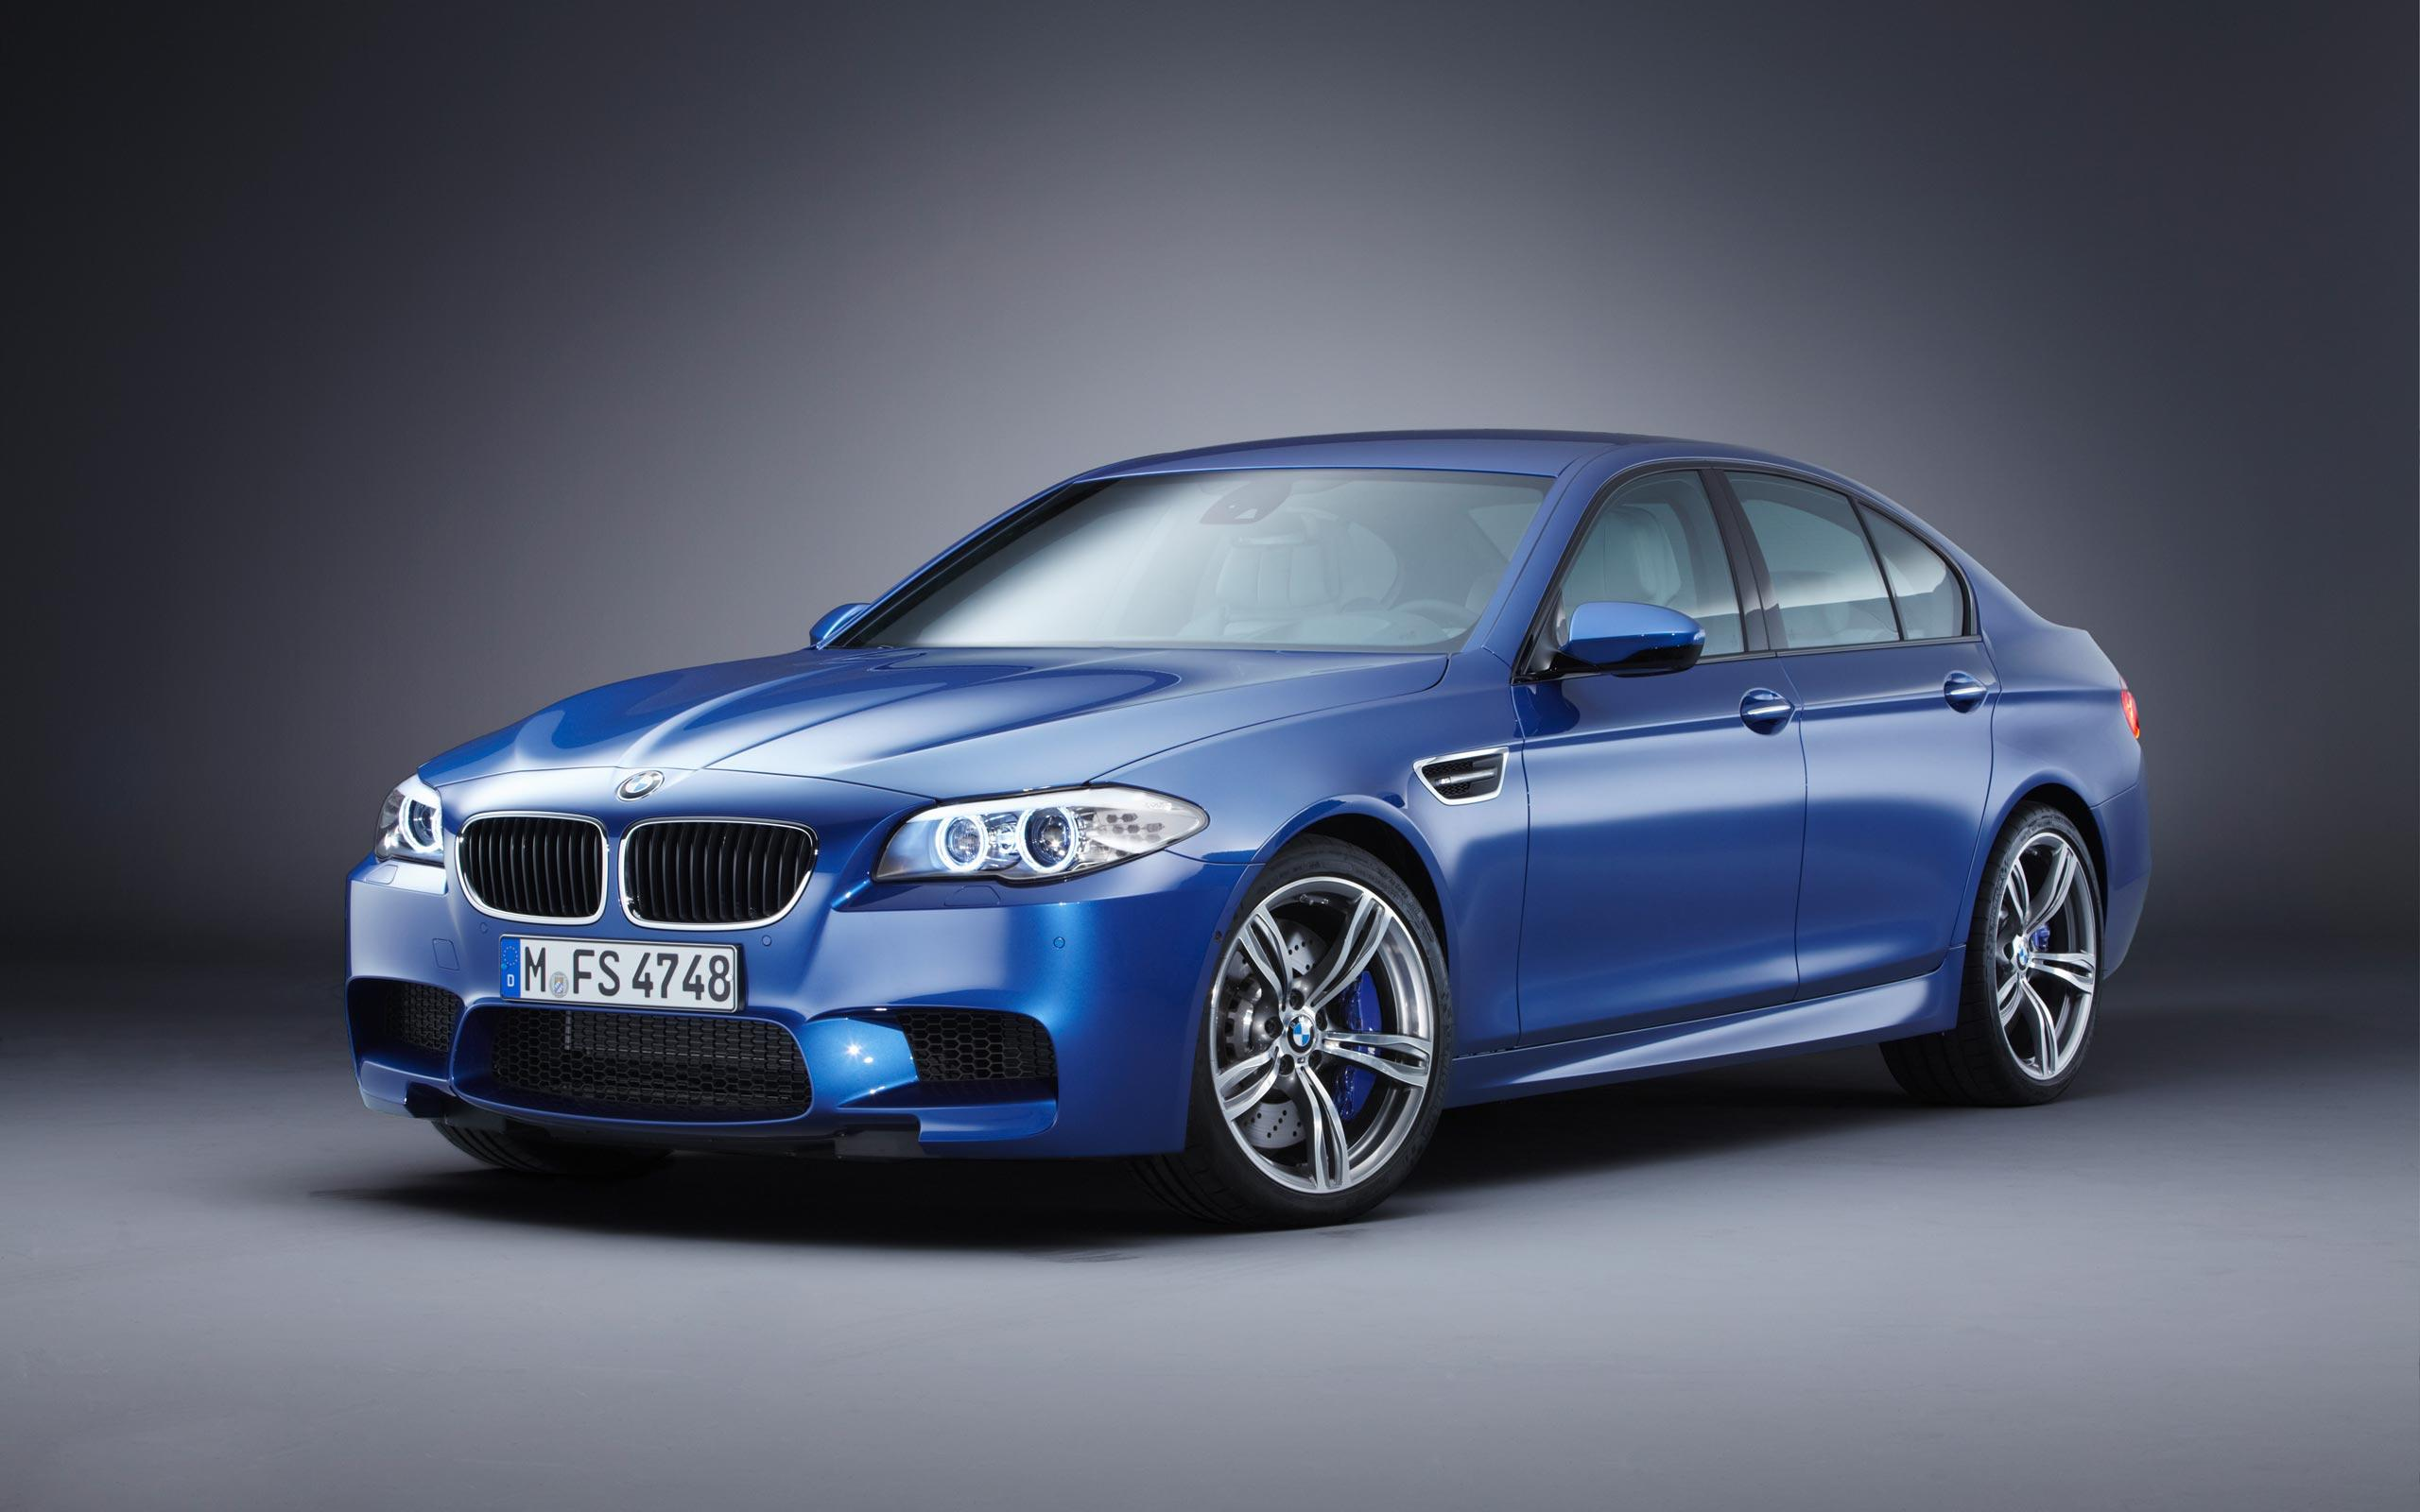 67 Best Free Bmw M5 Wallpapers Wallpaperaccess